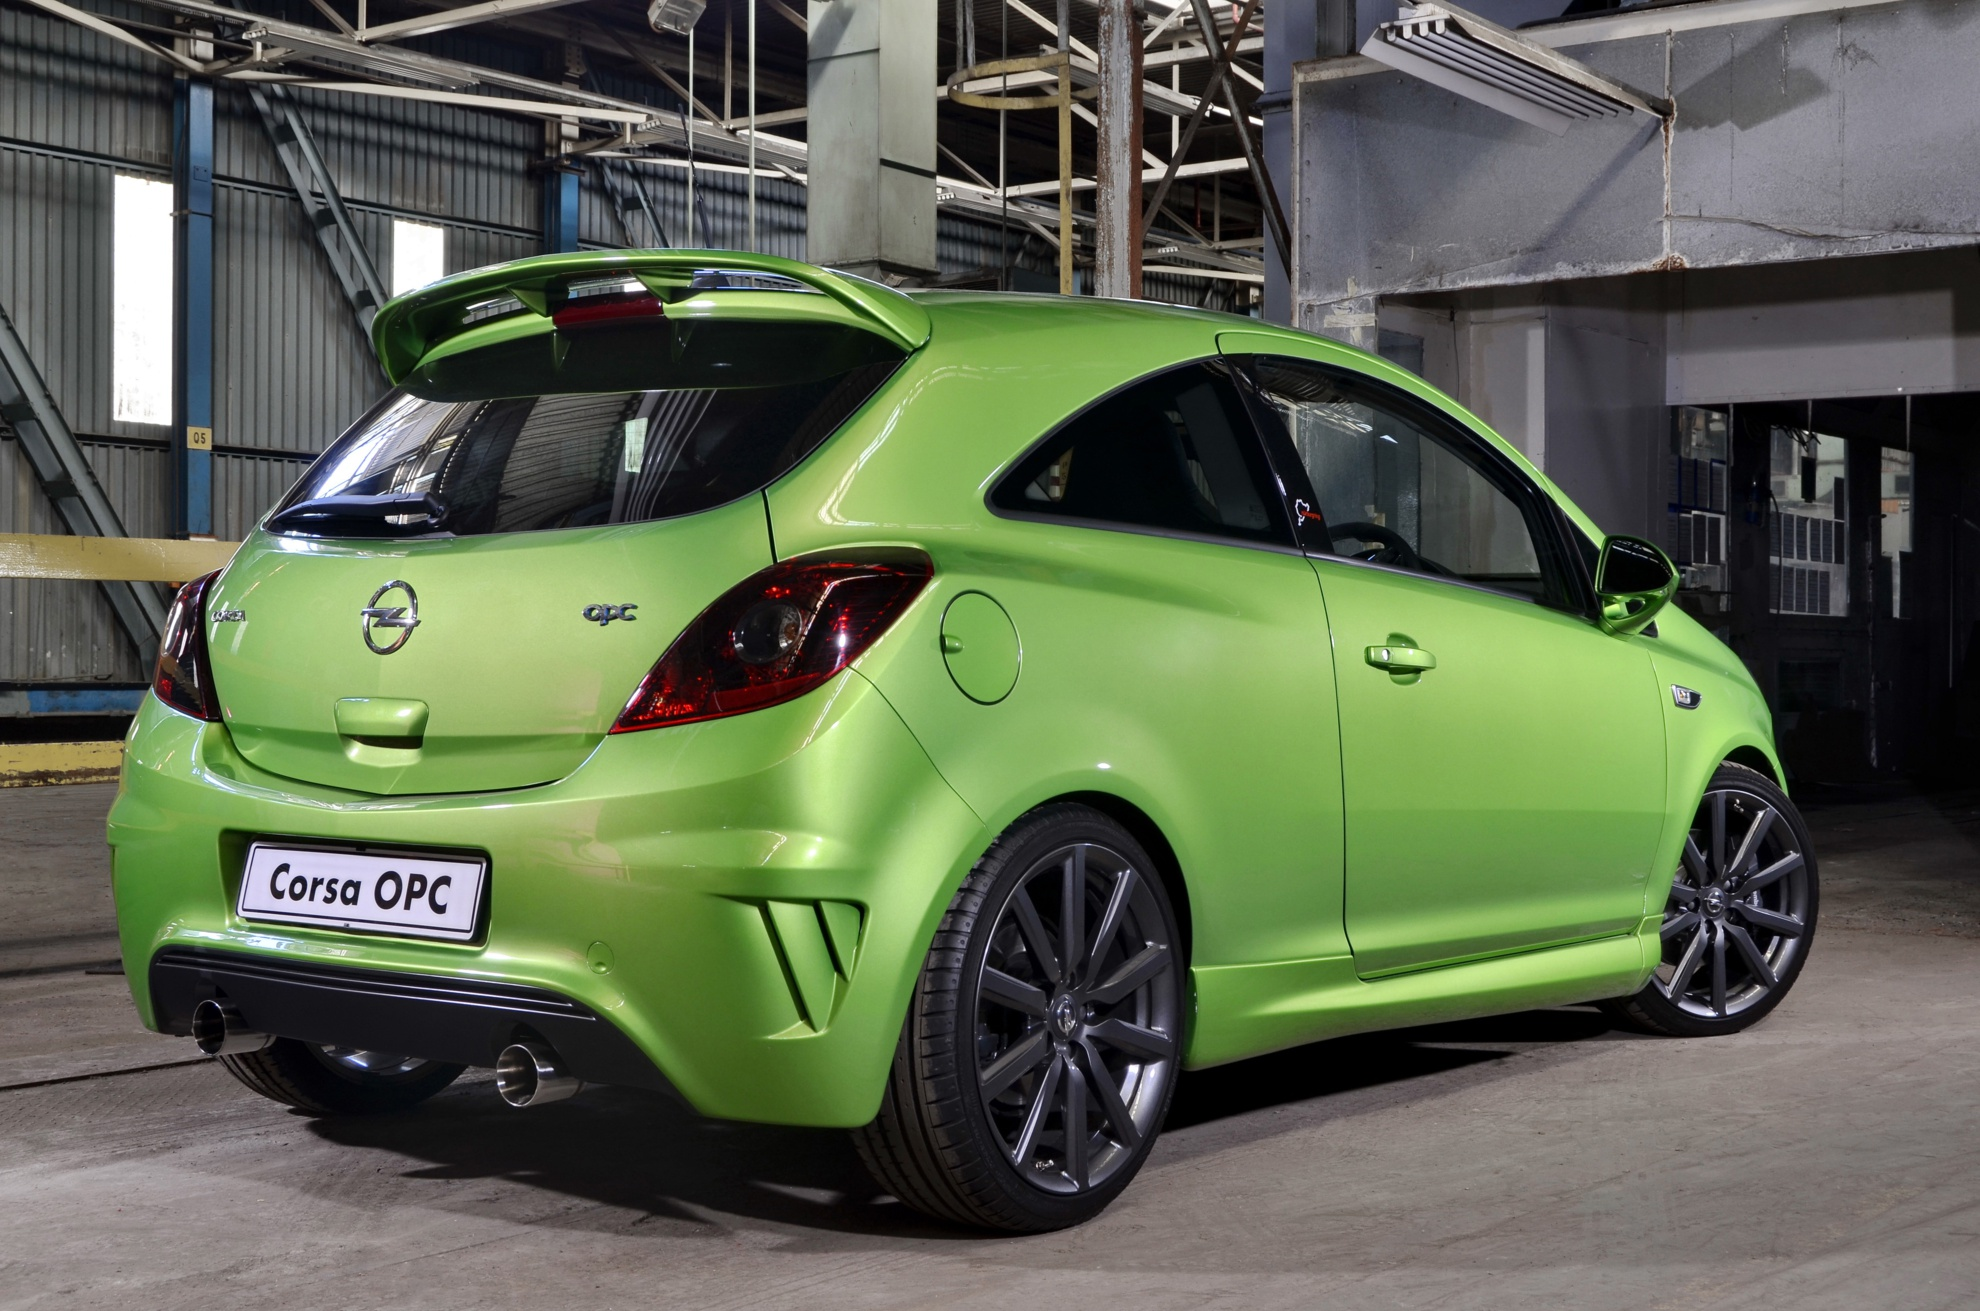 opel corsa opc n rburgring lands in south africa. Black Bedroom Furniture Sets. Home Design Ideas